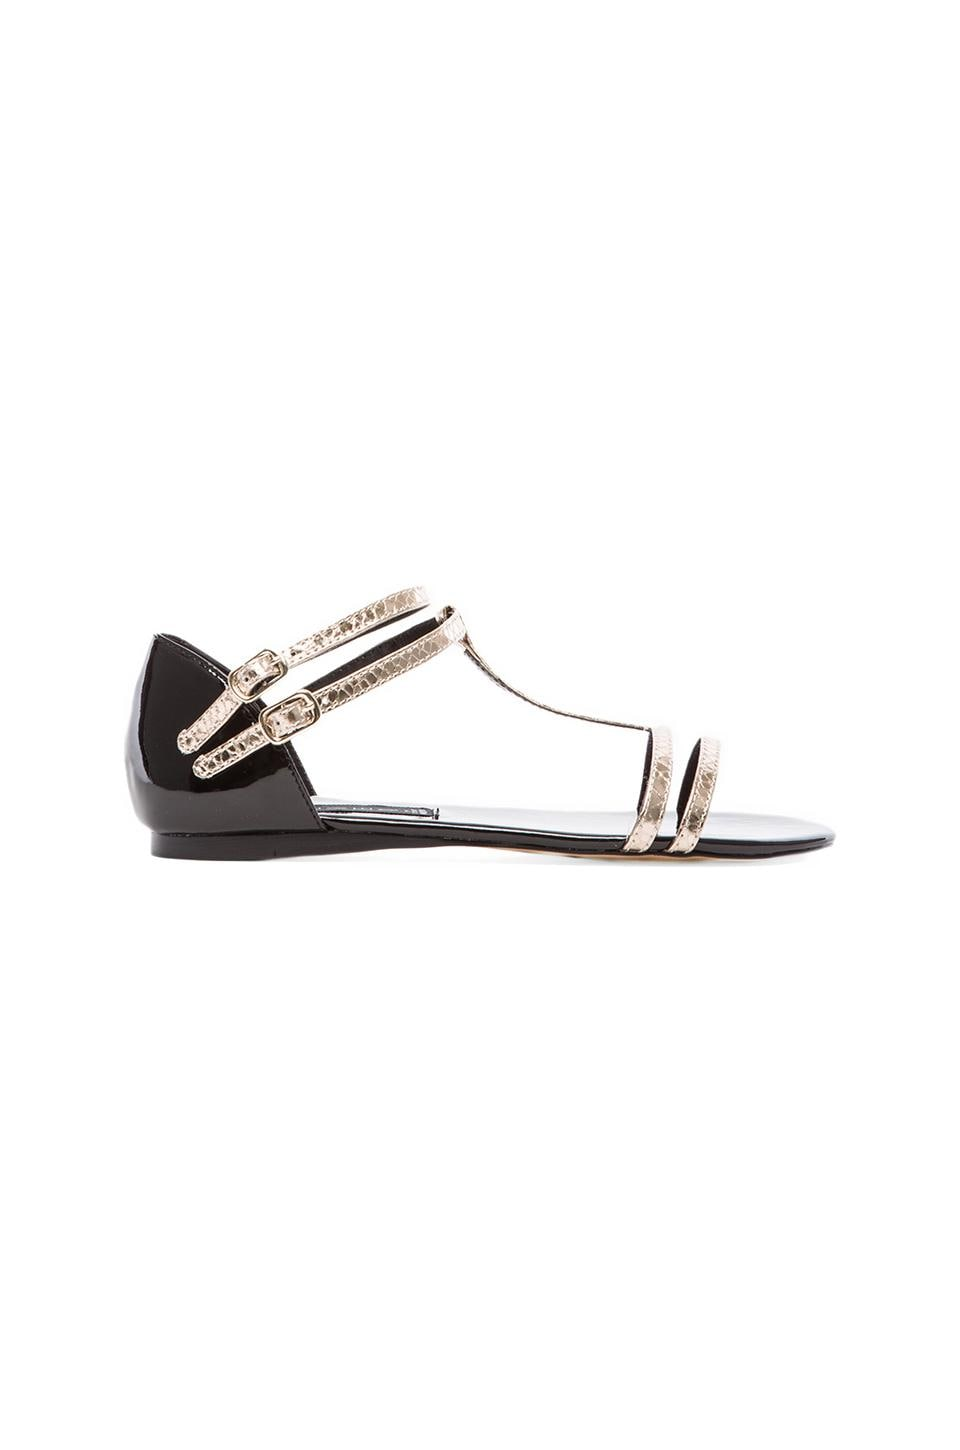 Steven Keliina Sandal in Black Multi